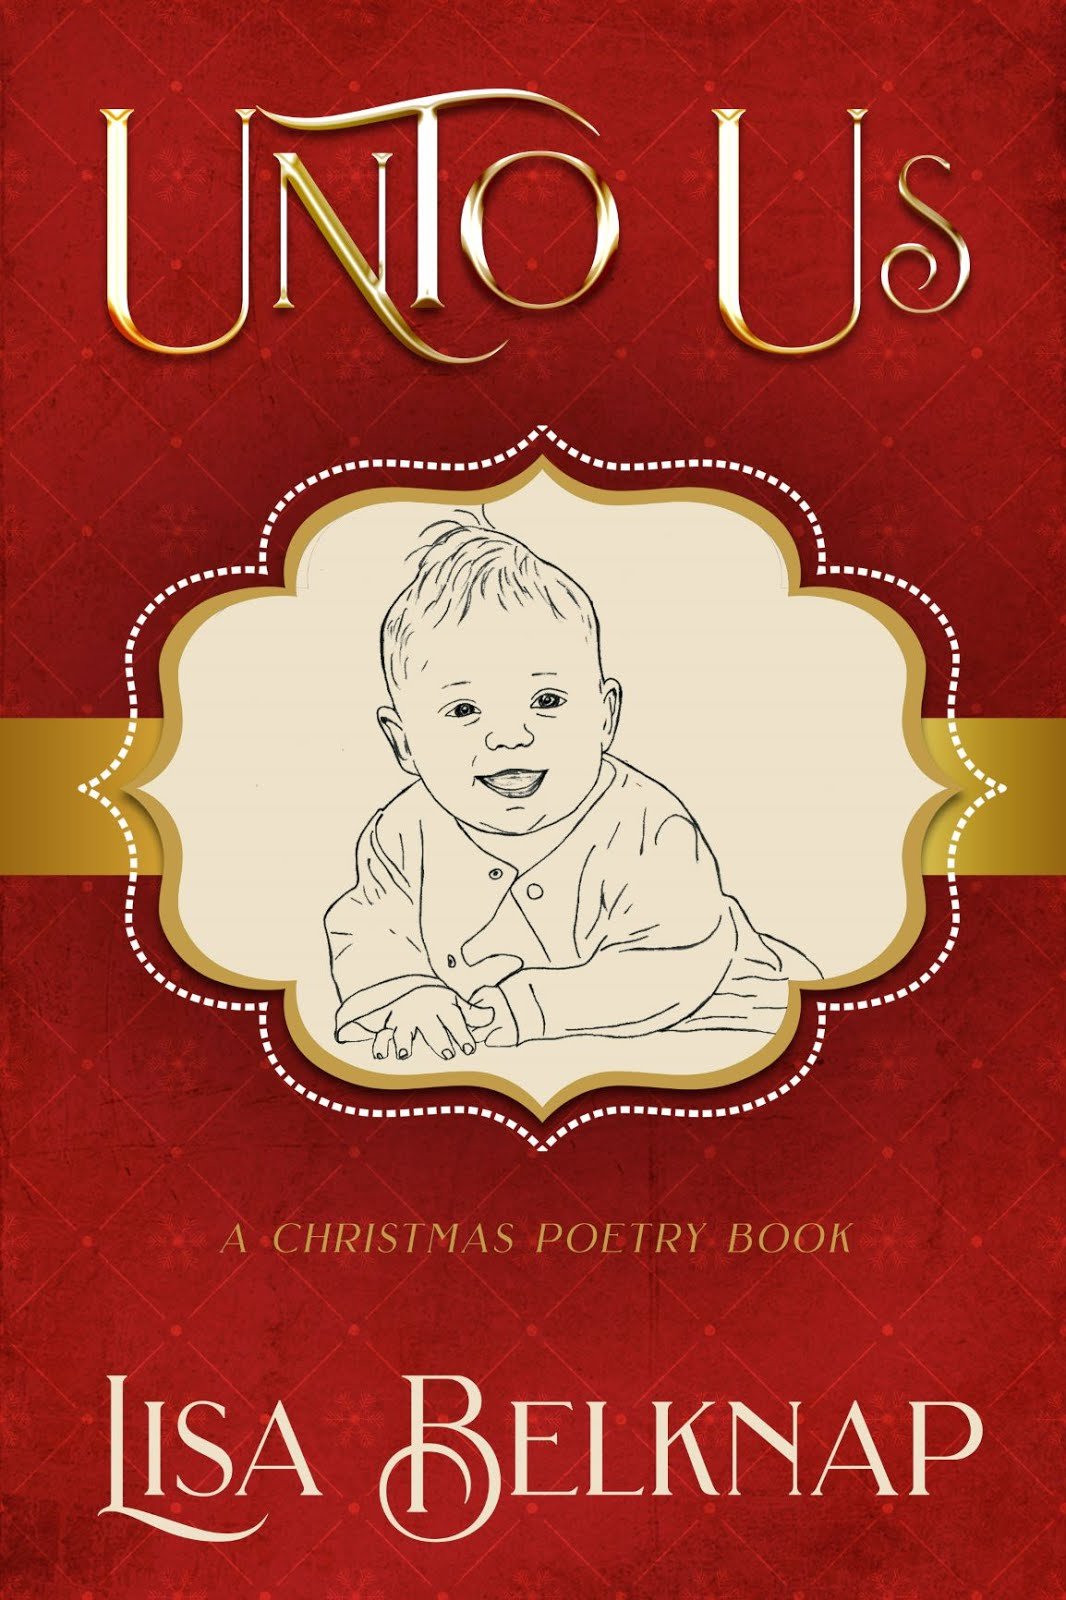 Unto Us: A Christmas Poetry Book  ...Available at Amazon.com. Please click image.